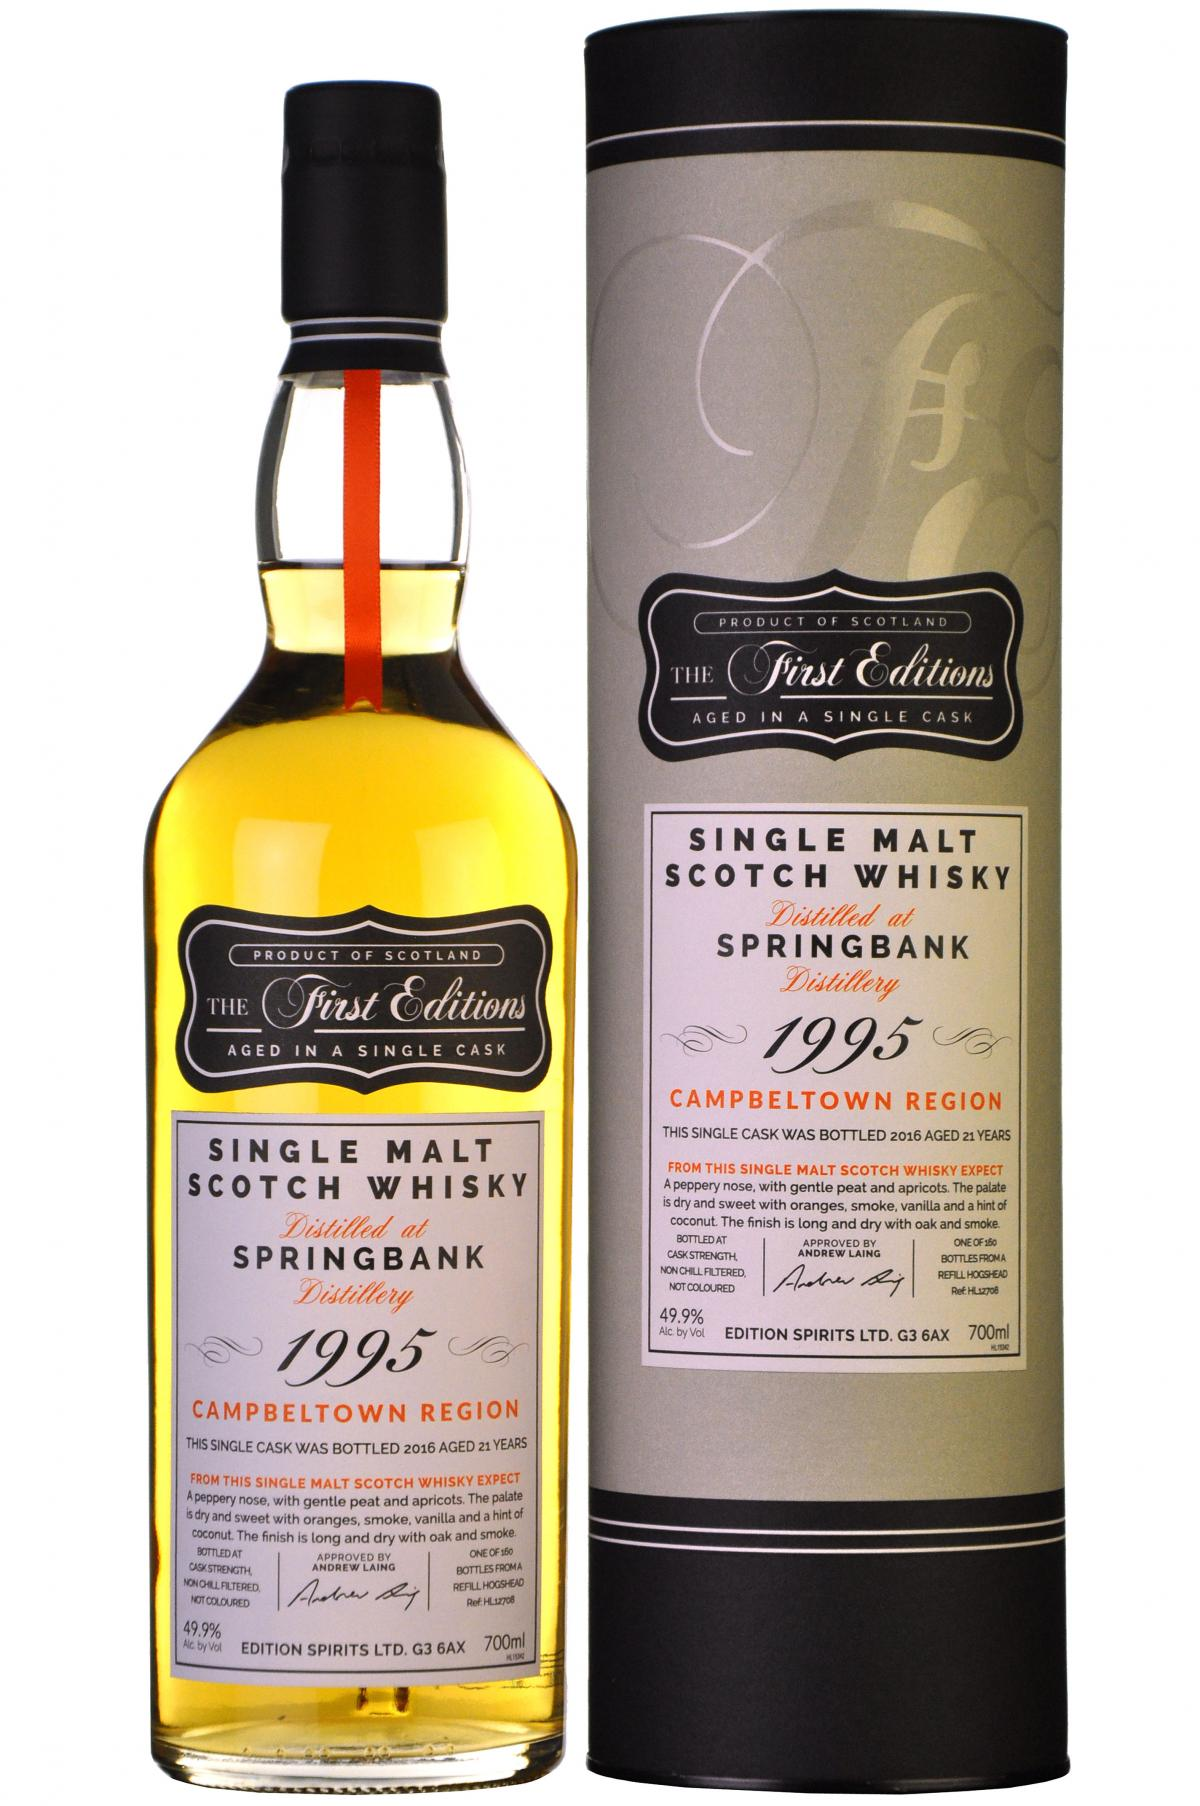 6187-8931springbank1995-201621yearoldthefirsteditions